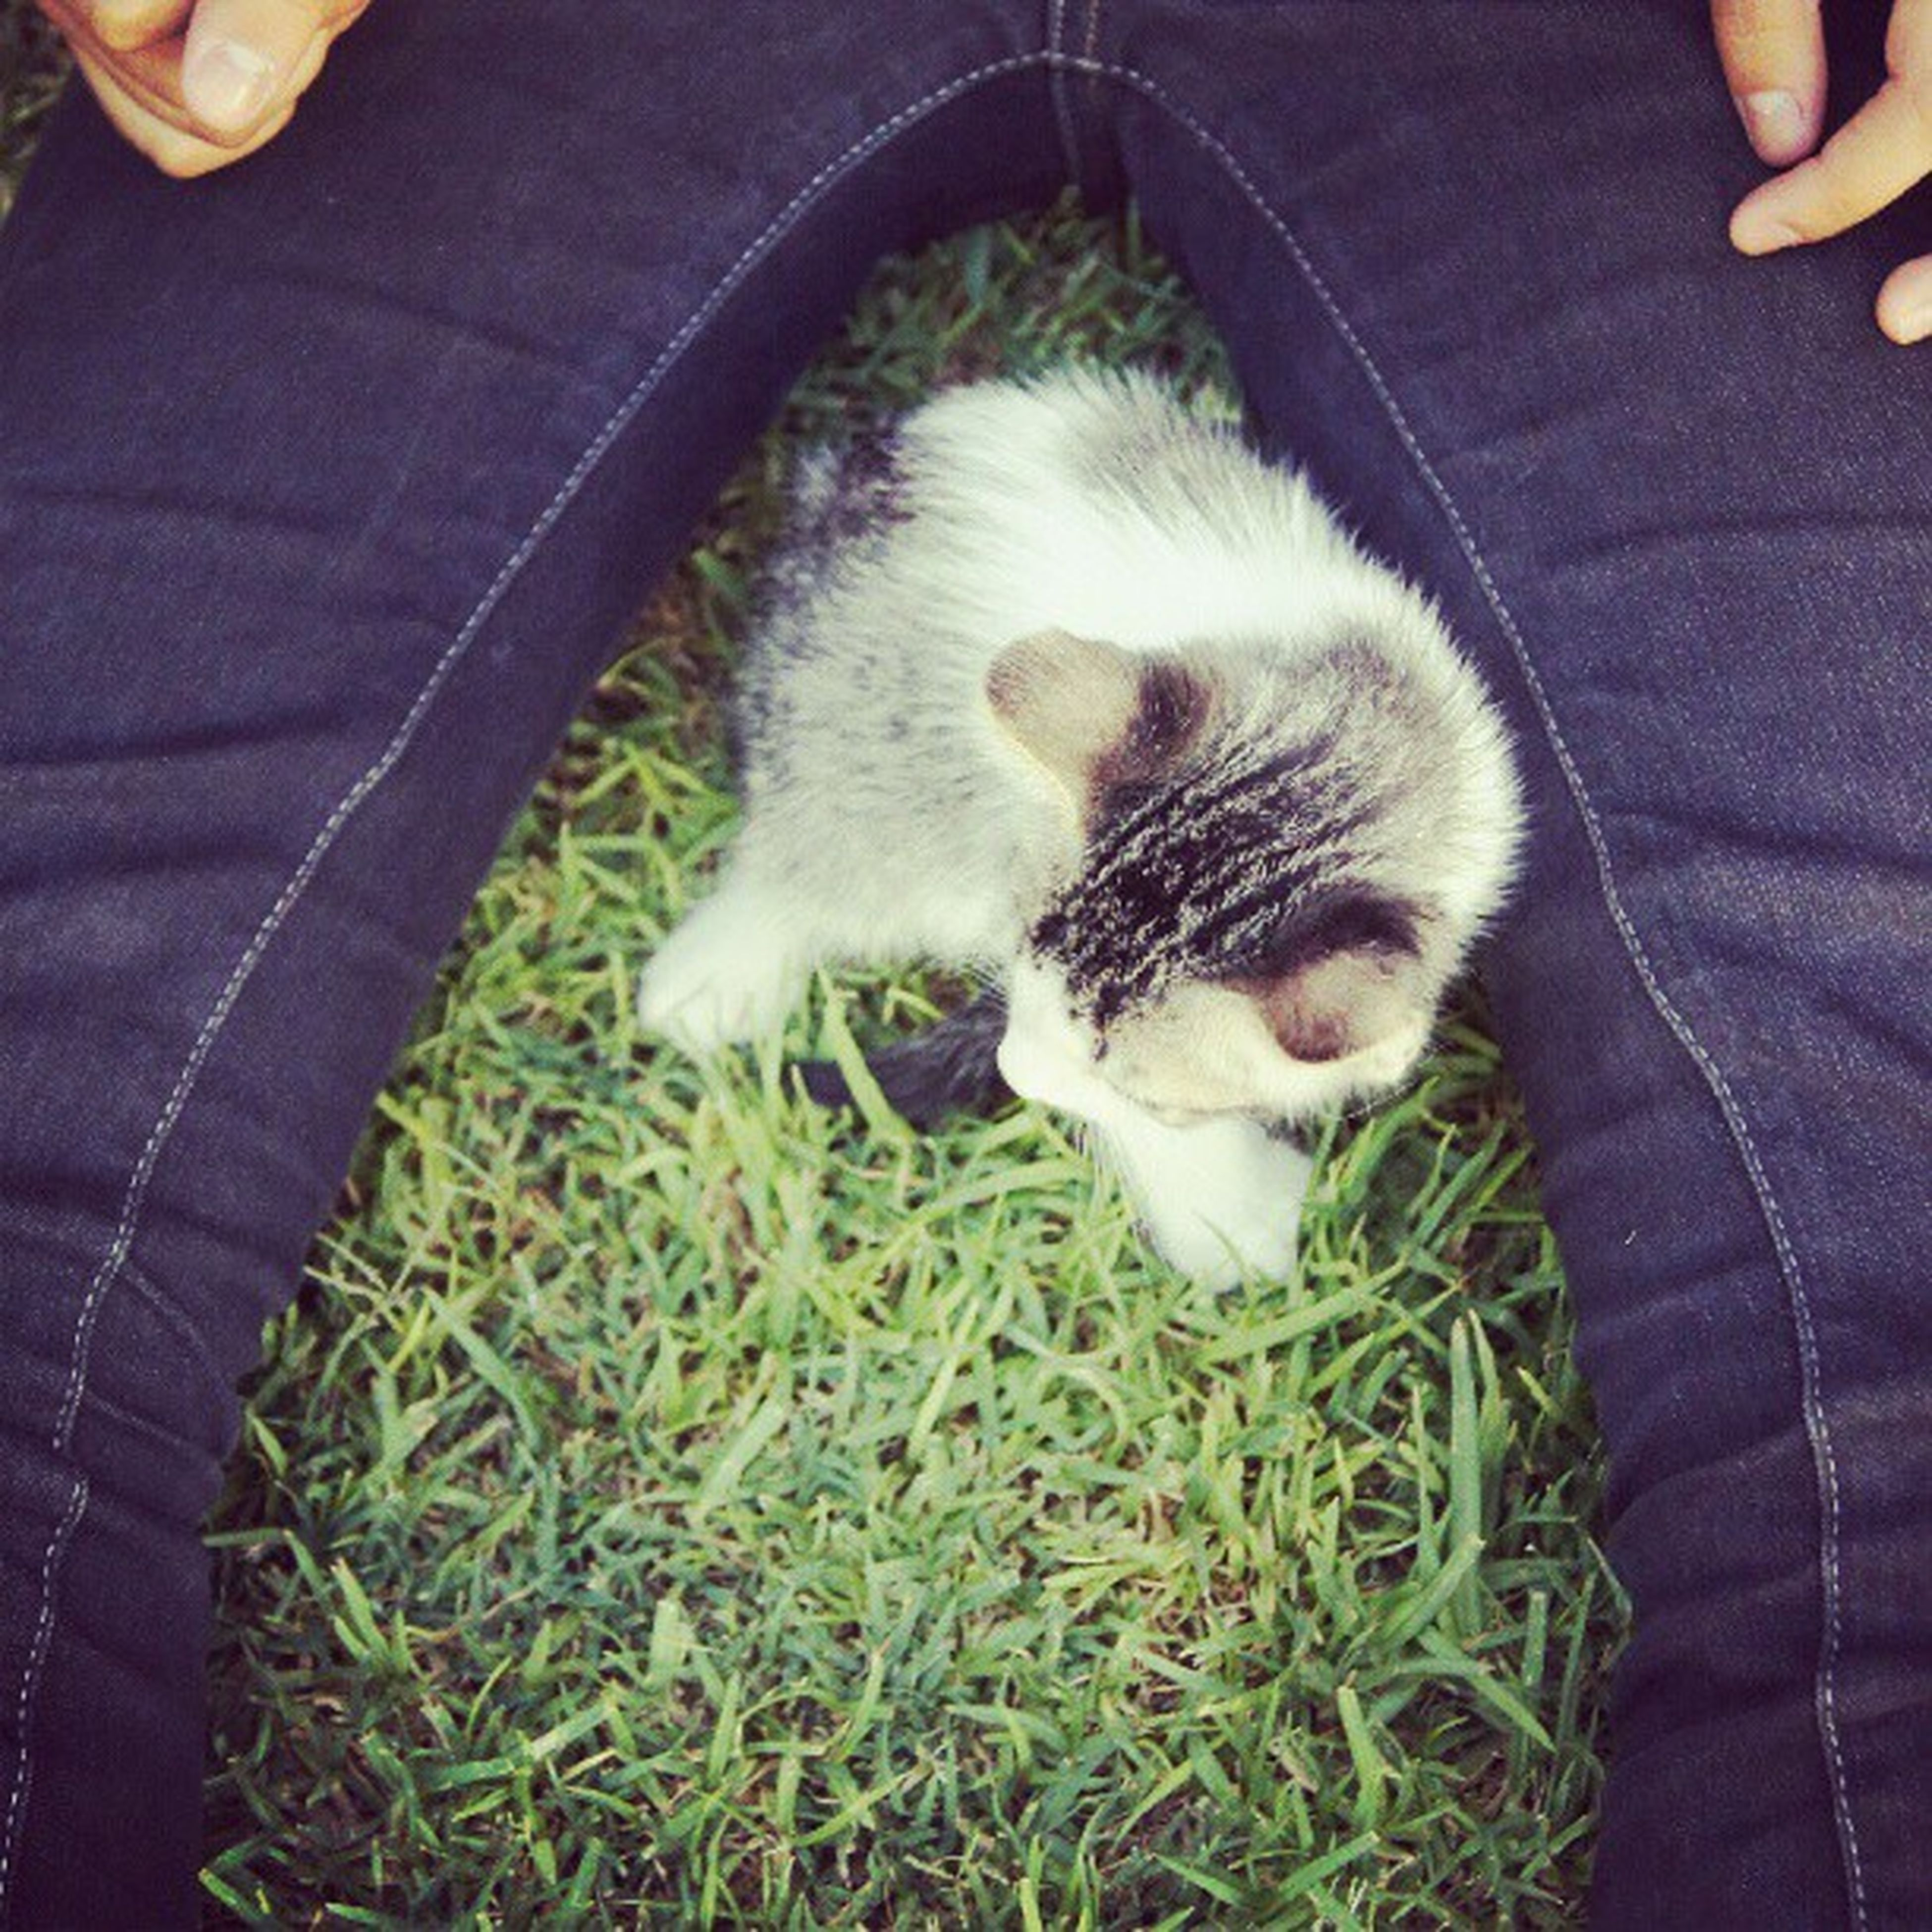 pets, animal themes, domestic animals, one animal, mammal, dog, person, pet owner, grass, holding, lifestyles, high angle view, young animal, part of, unrecognizable person, leisure activity, men